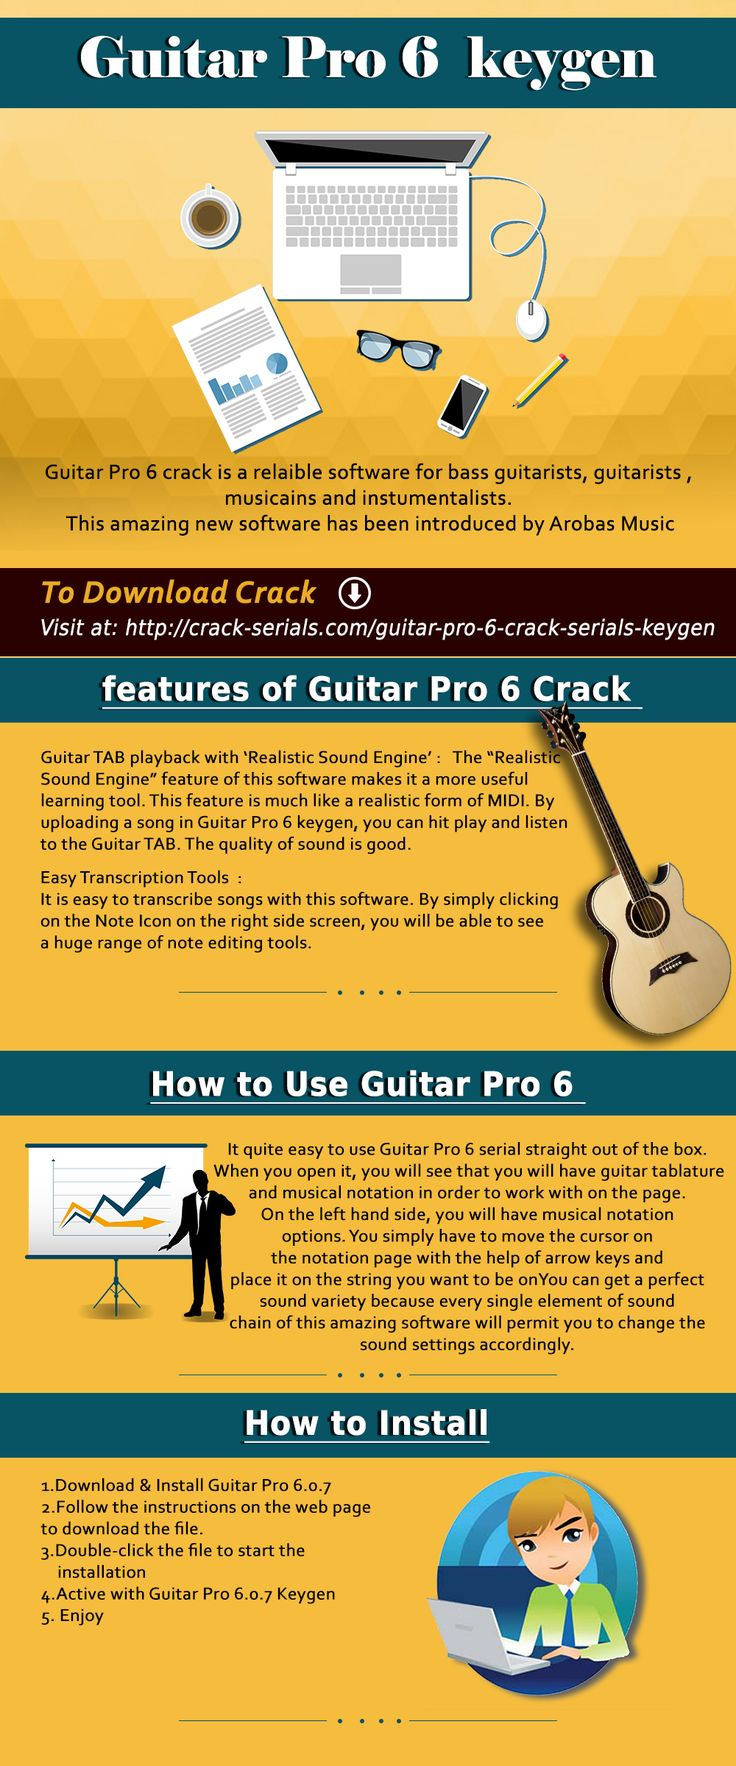 Guitar pro 6 keygen will not only make writing music easier for you, it  has over 100 studio-recorded sound banks, effects, and amps that will help you in creating your own presets.